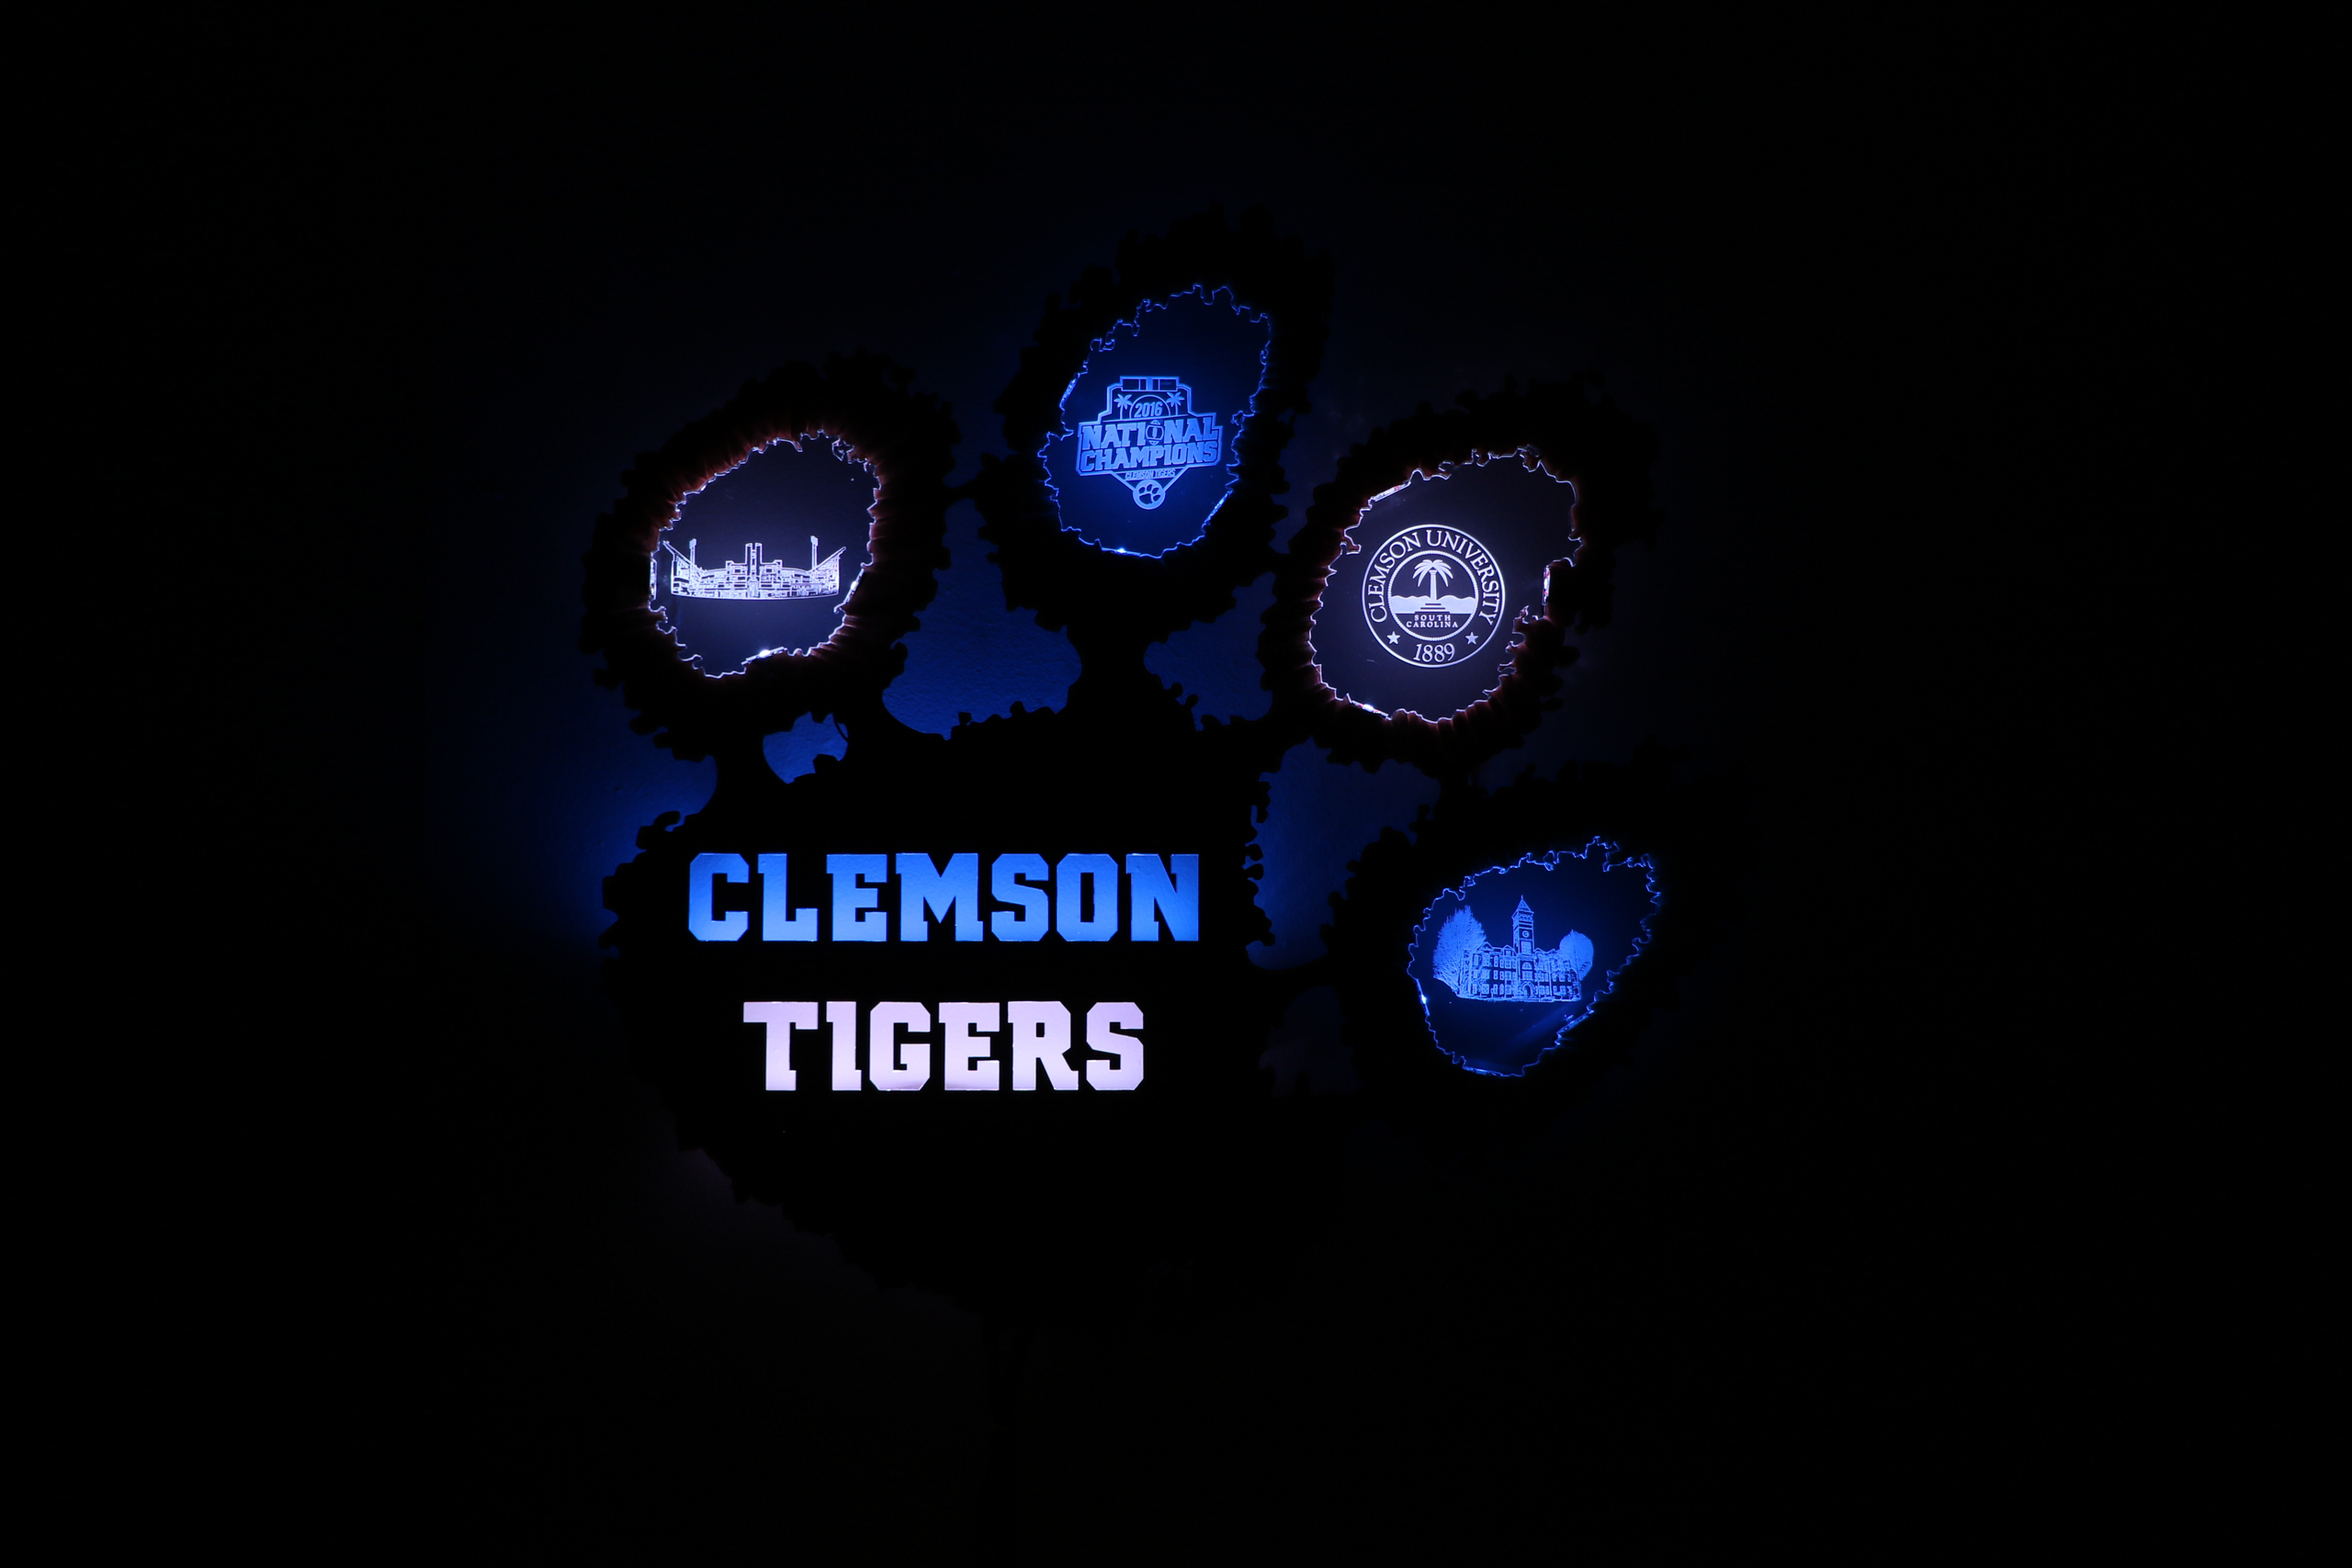 Back-lit Clemson Tiger Paw Sign - Arduino Project by Jacob